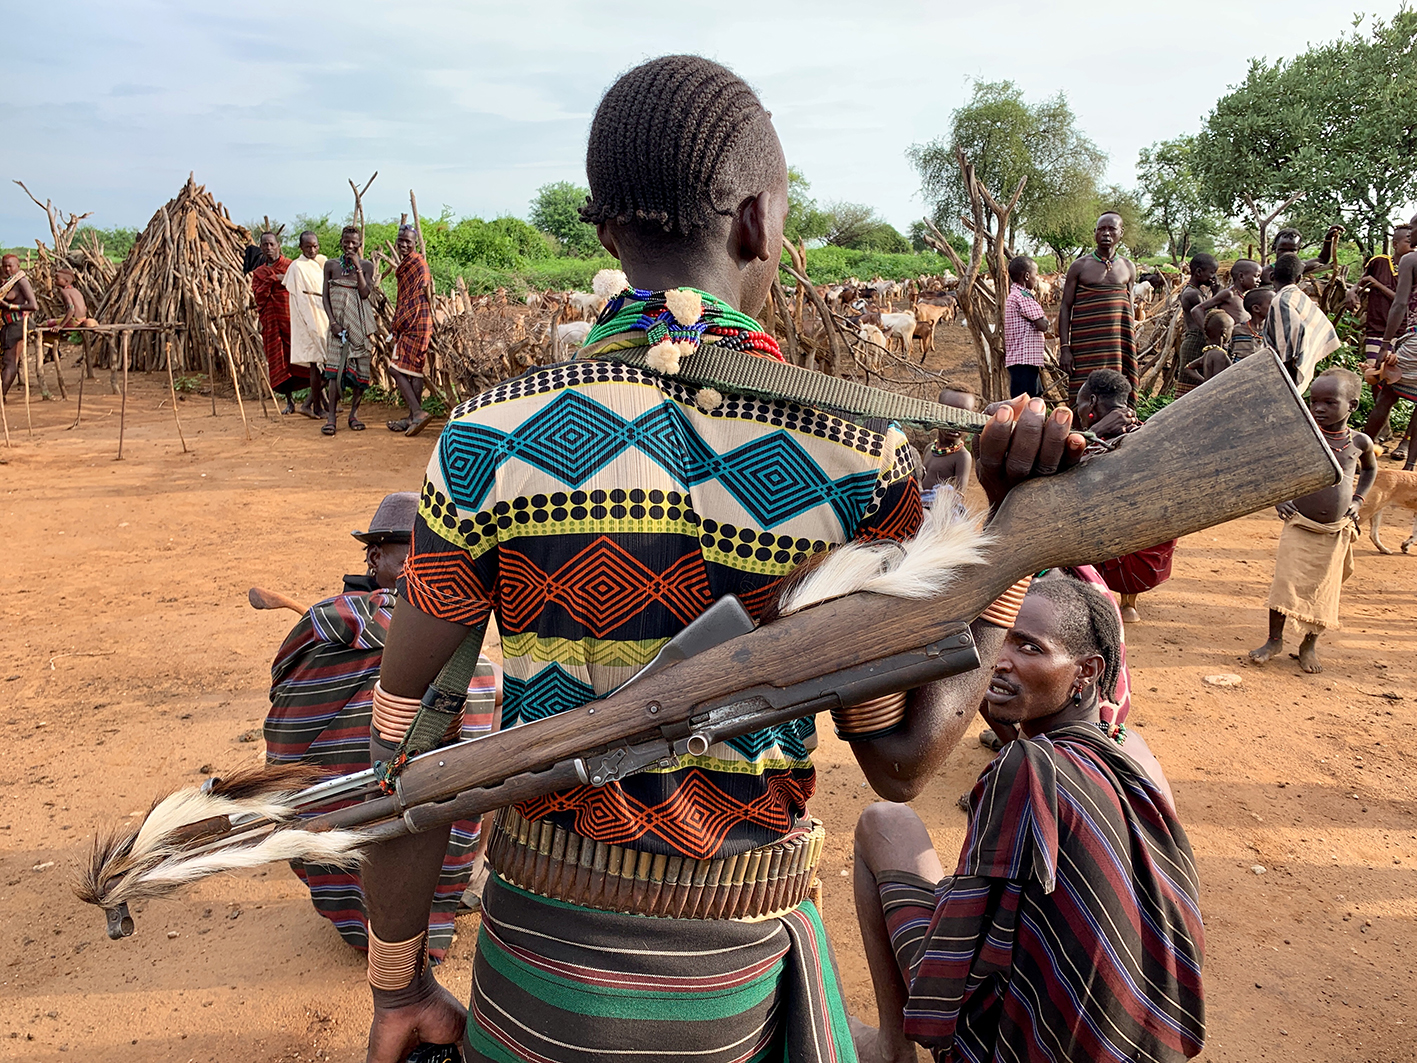 Hamar people of the Omo Valley